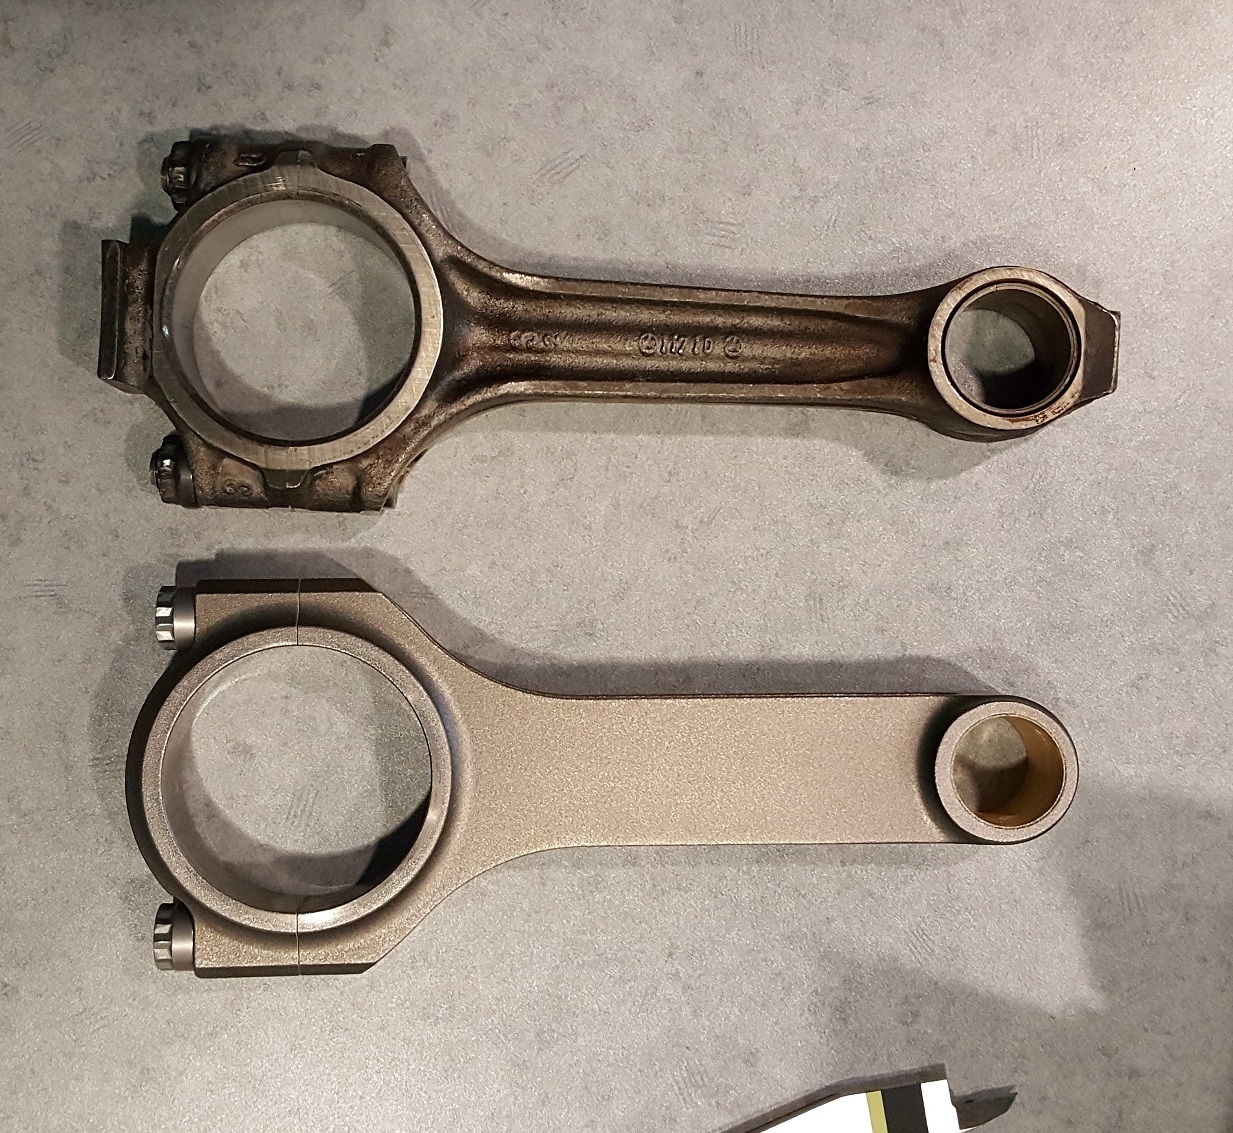 The stock connecting rod is pictured on top, with the new Carrillo rod on the bottom, which is stronger and lighter.